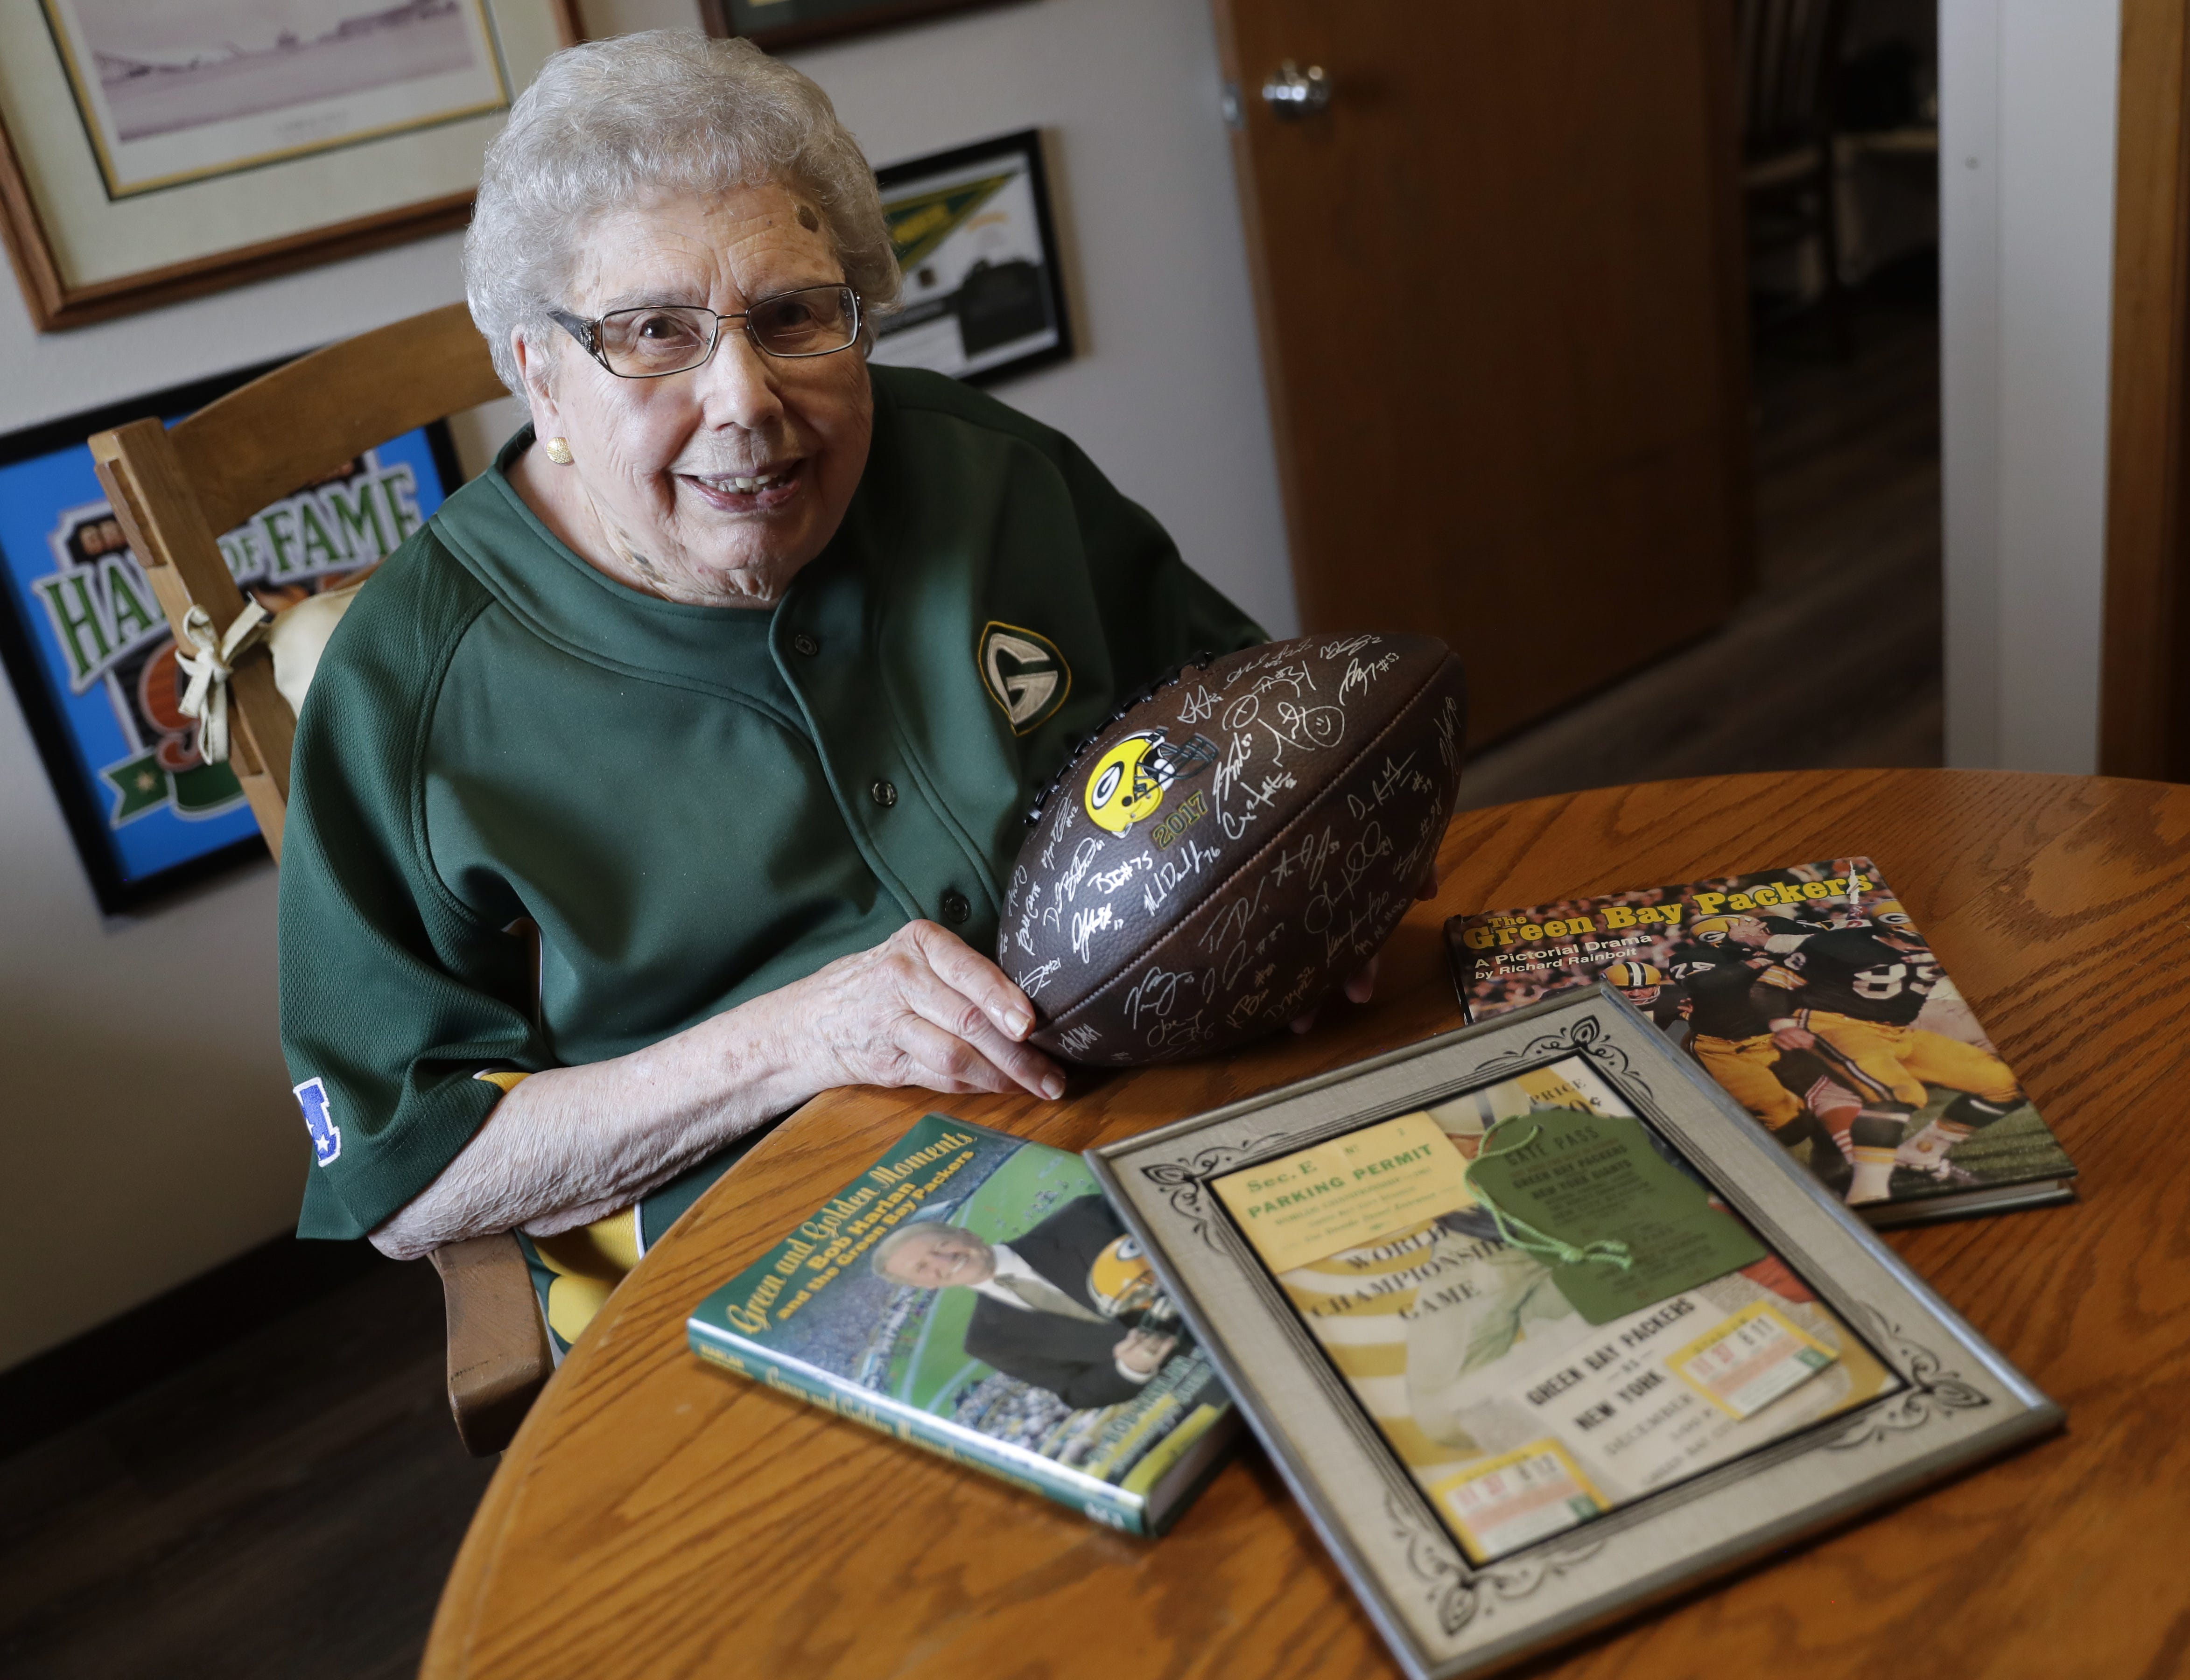 100-year-old Packers fan has lifetime of game memories, special connection to team